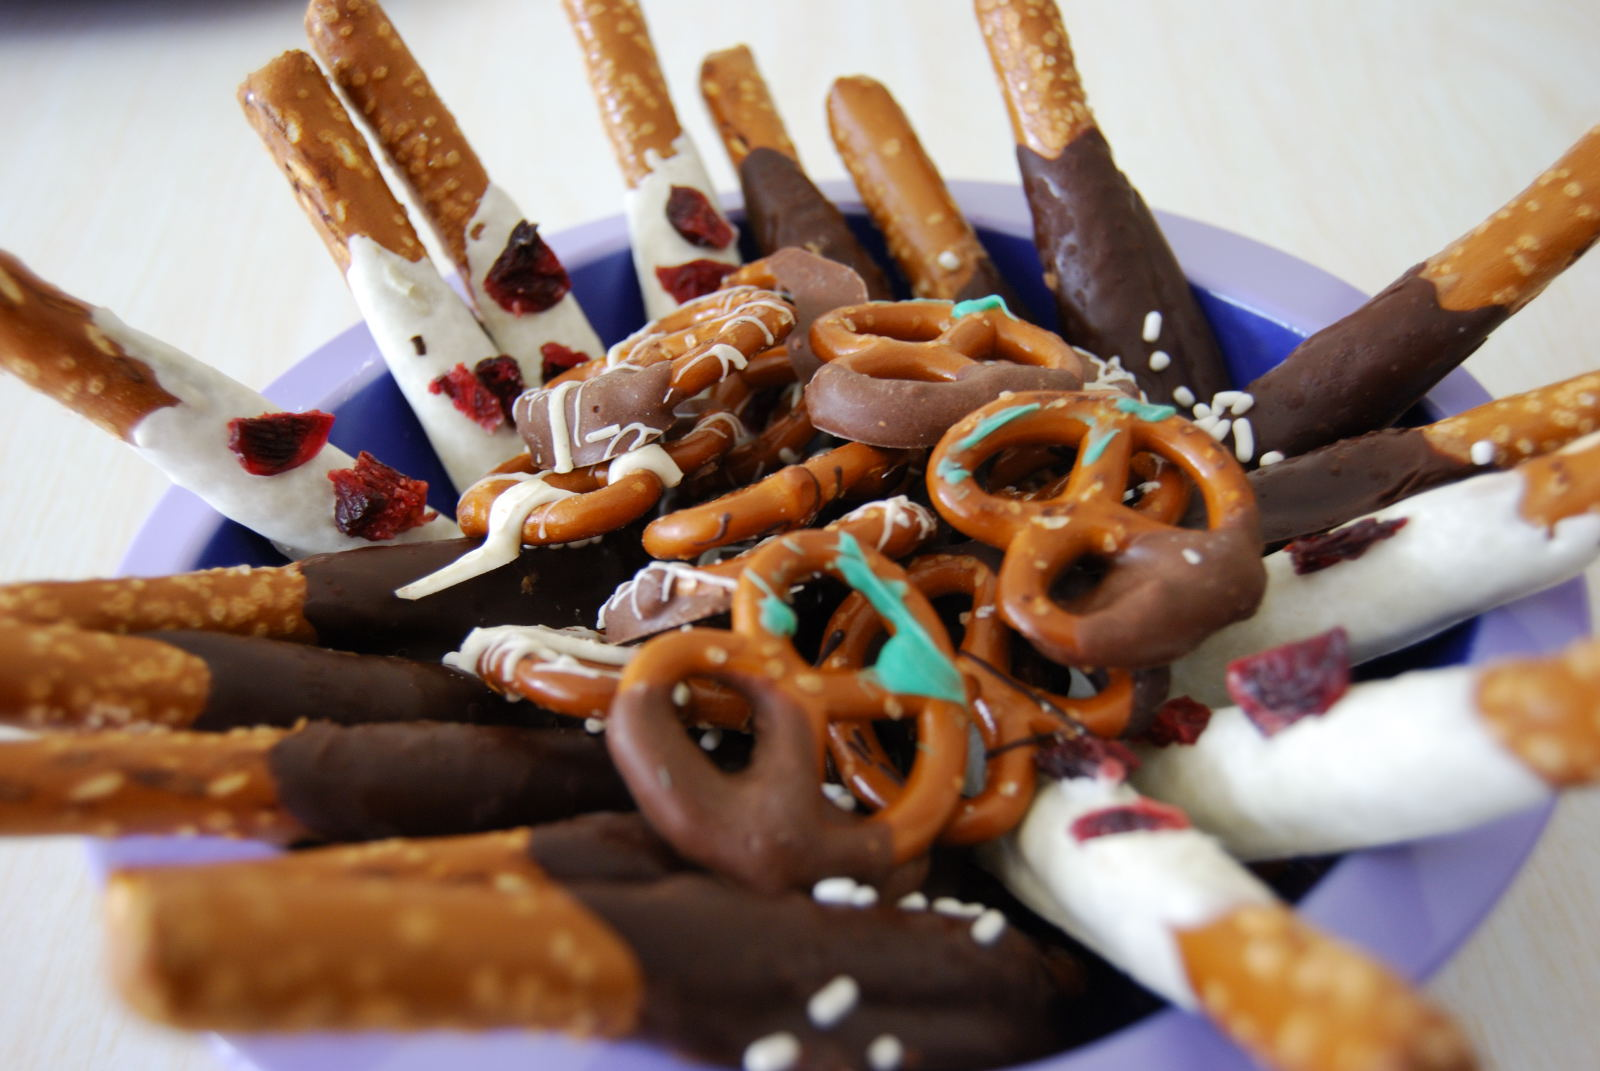 How to Make Chocolate Covered Pretzels image by Thank you for blogger ...